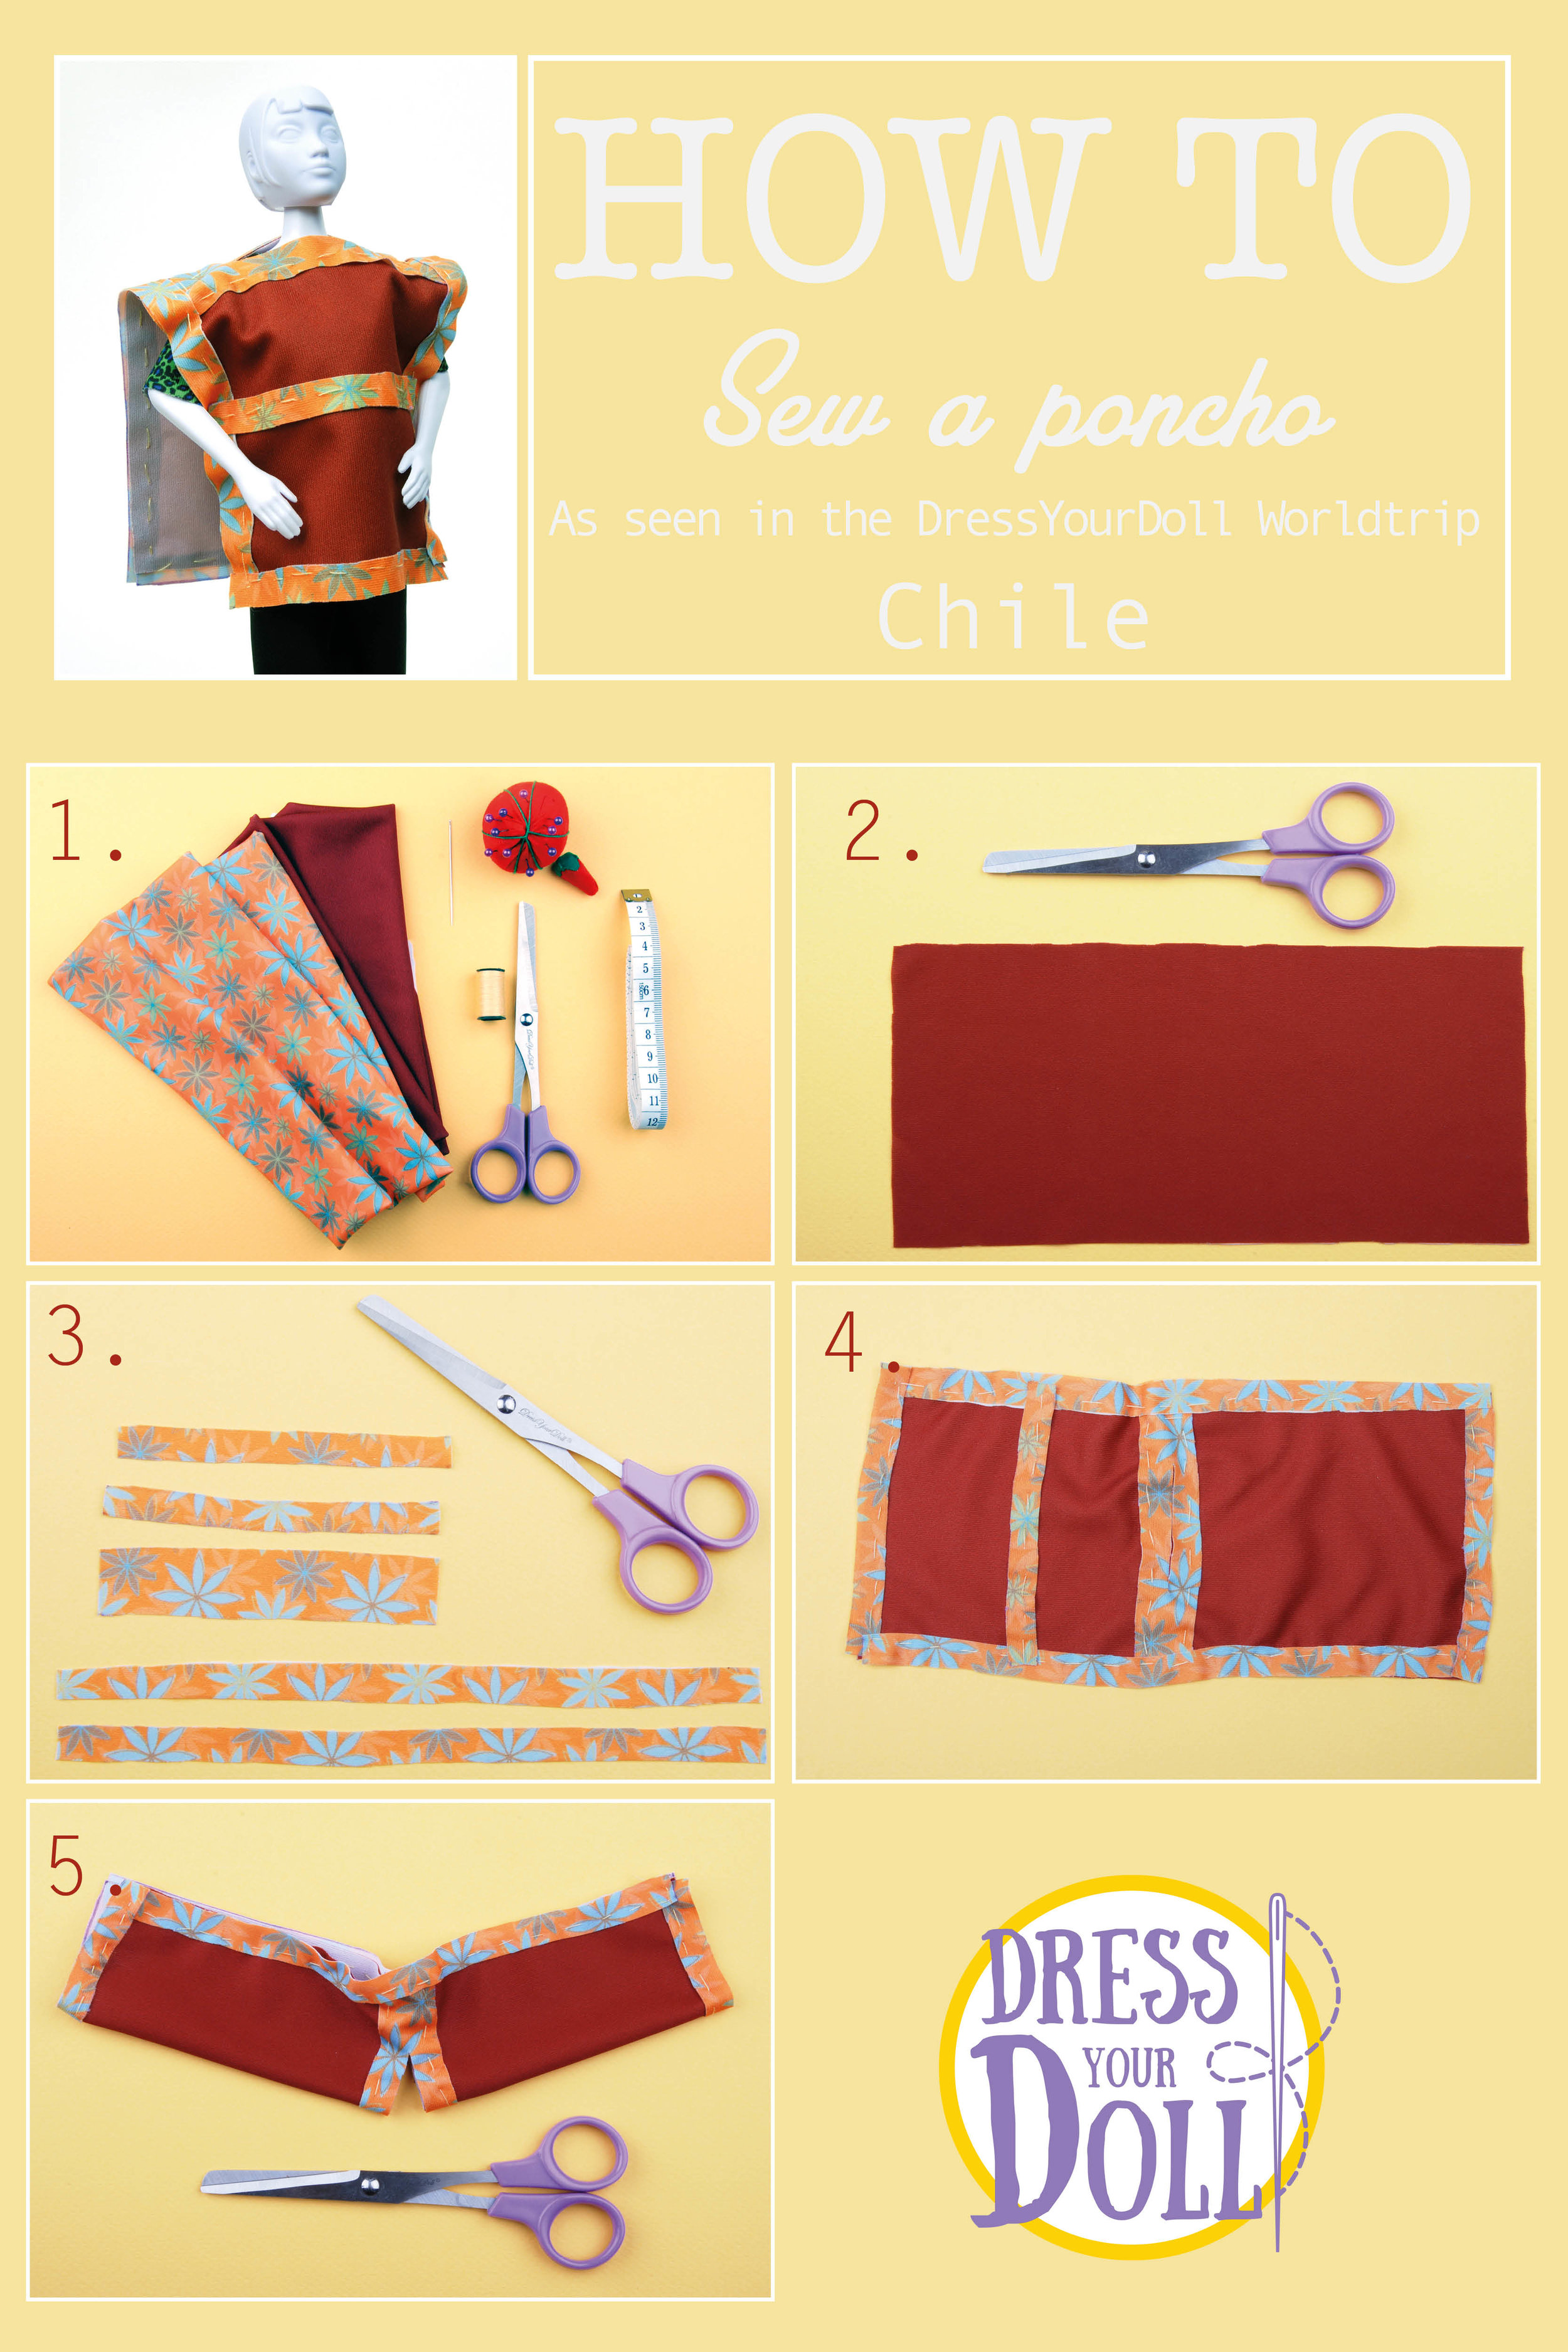 Poncho - 1. What do you need?2. Cut out a rectangle of 10 cm x 20 cm out of plain fabric3. Cut out- 2 rectangles of 1 cm x 20 cm- 3 rectangles of 1 cm x 10 cm- 1 rectangle of 2 cm x 10 cm out of the printed fabric4. Sew the printed rectangles to the corresponding sides of the plain rectangle, as seen on the picture.5. Cut out a hole for the head in the middle of the poncho by folding it in the length and cutting the two pieces of fabric at once.